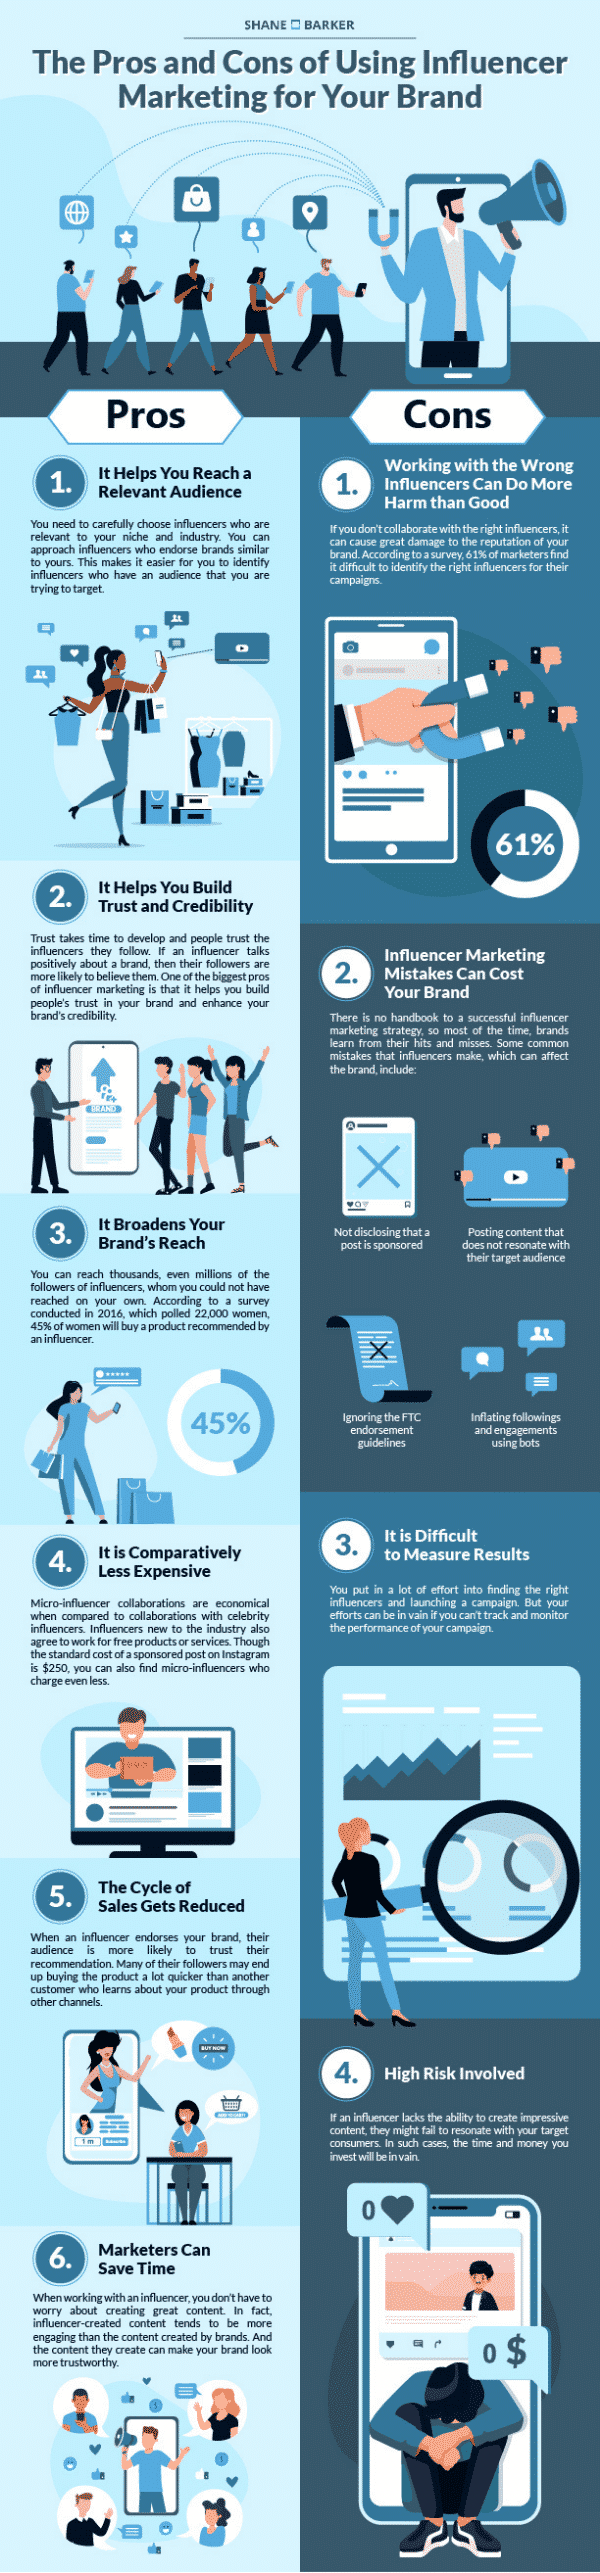 For another look at both the key benefits and drawbacks of influencer marketing, check out this great infographic!